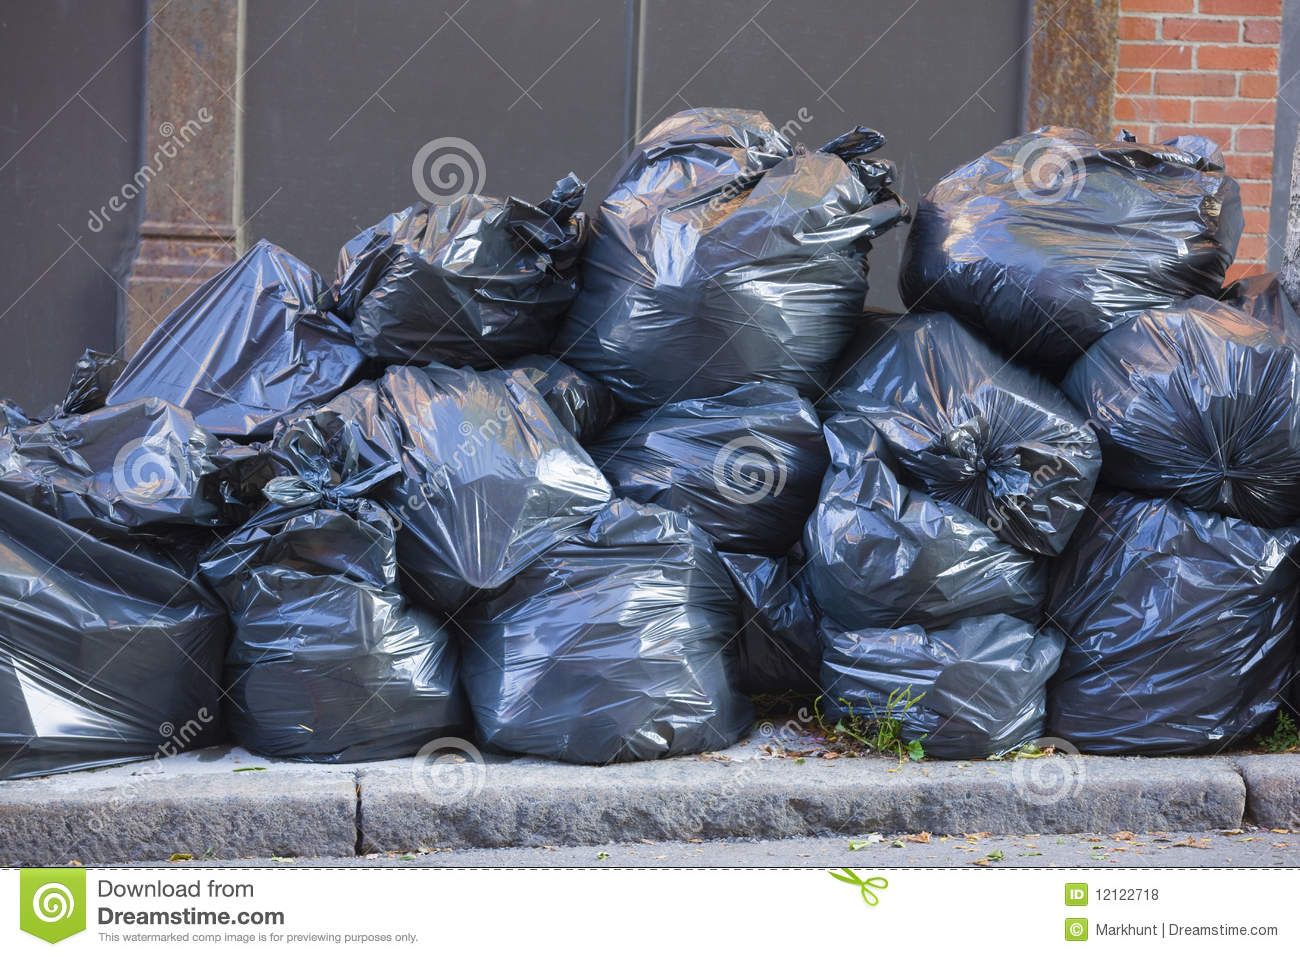 Pile Of Trash Bags Royalty Free Stock Photos - Image: 12122718